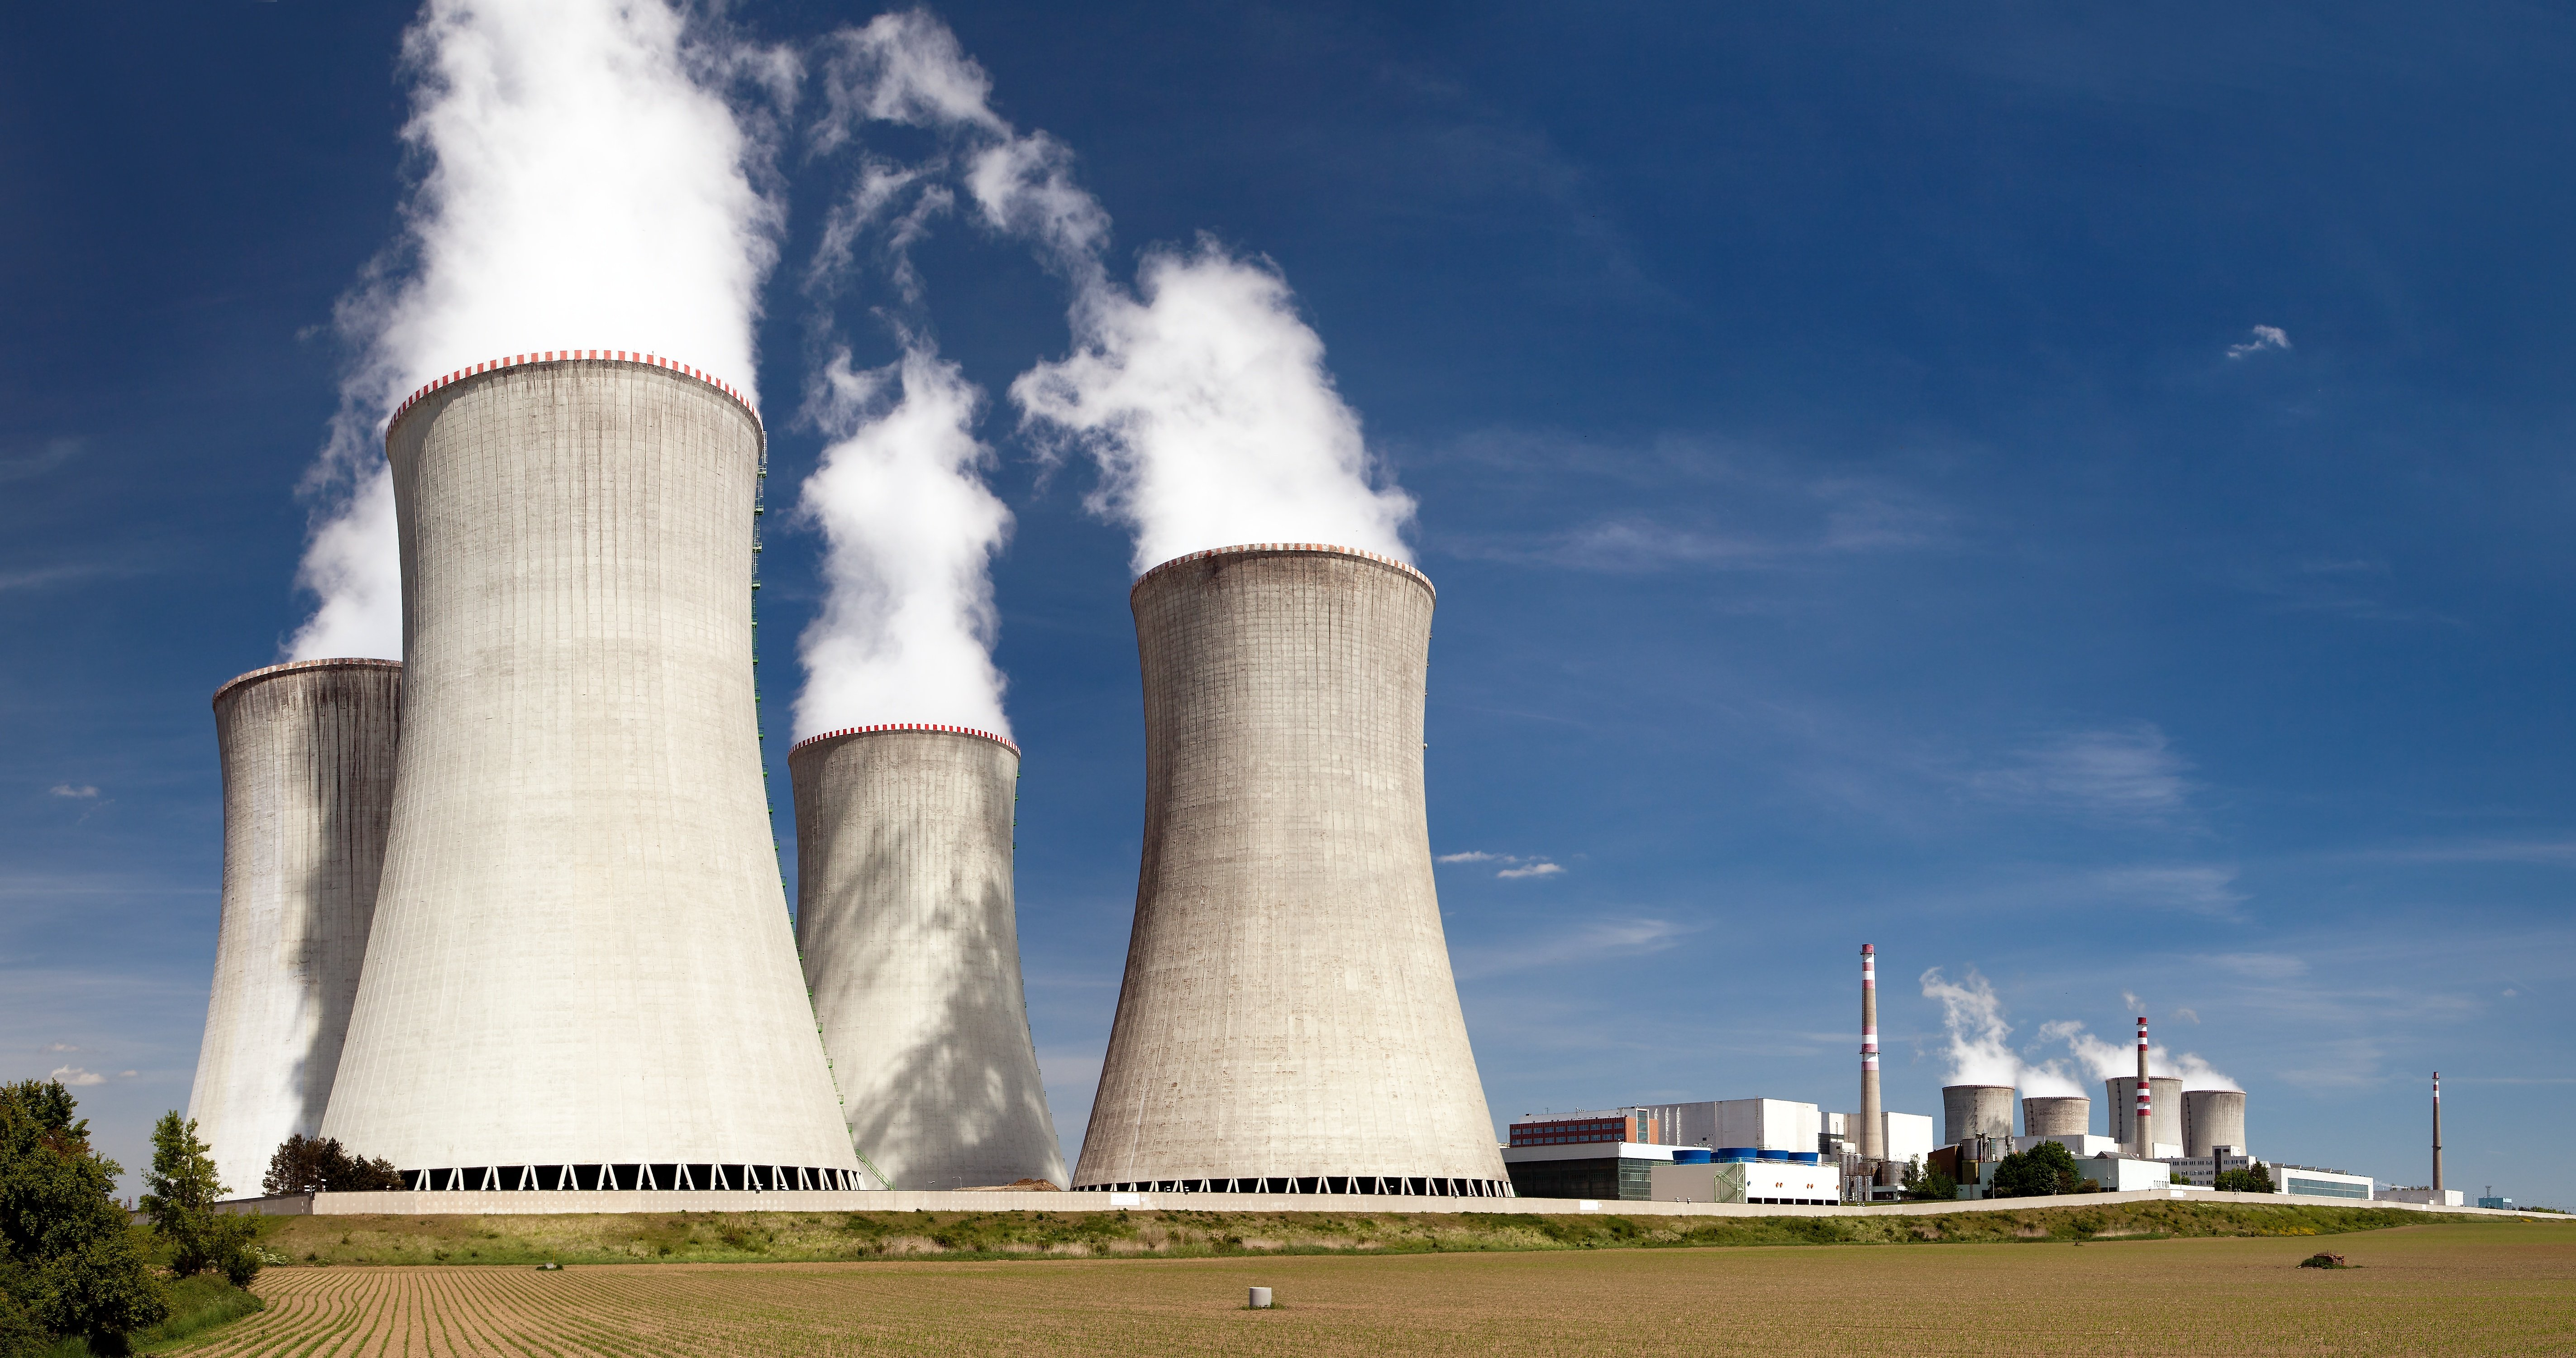 3 Inspection Challenges in the Power Generation Industry Addressed by Pulsed Eddy Current Inspections